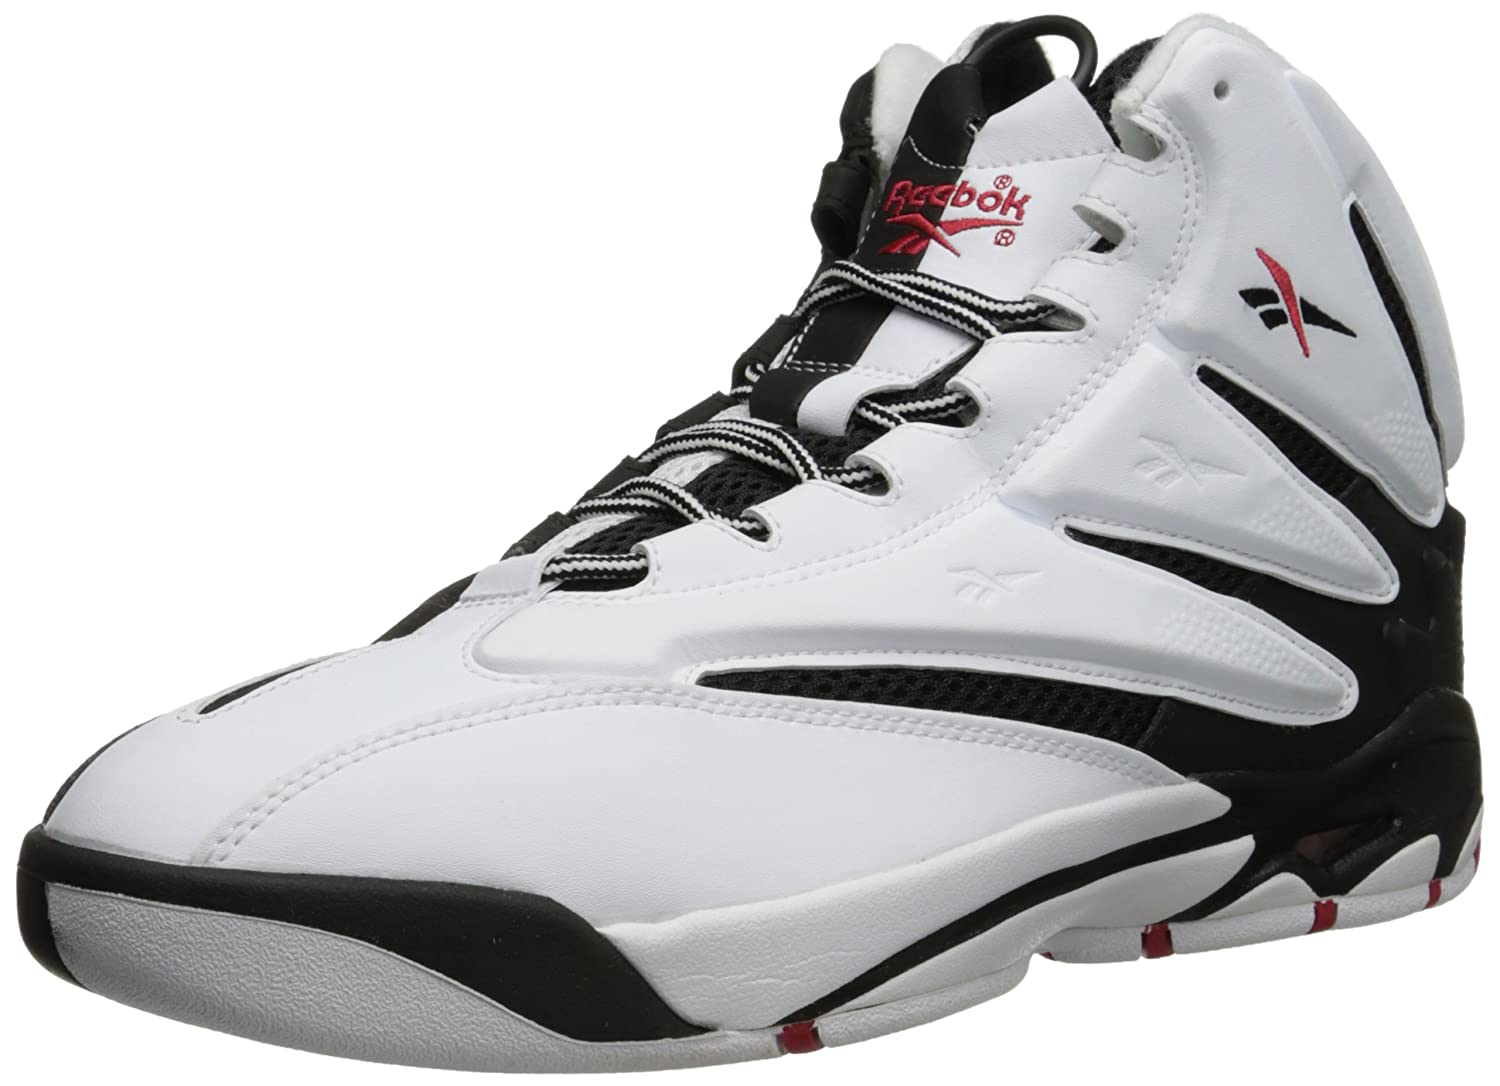 Reebok Men's BLAST Classic Black & White Retro Basketball Shoes Sneakers